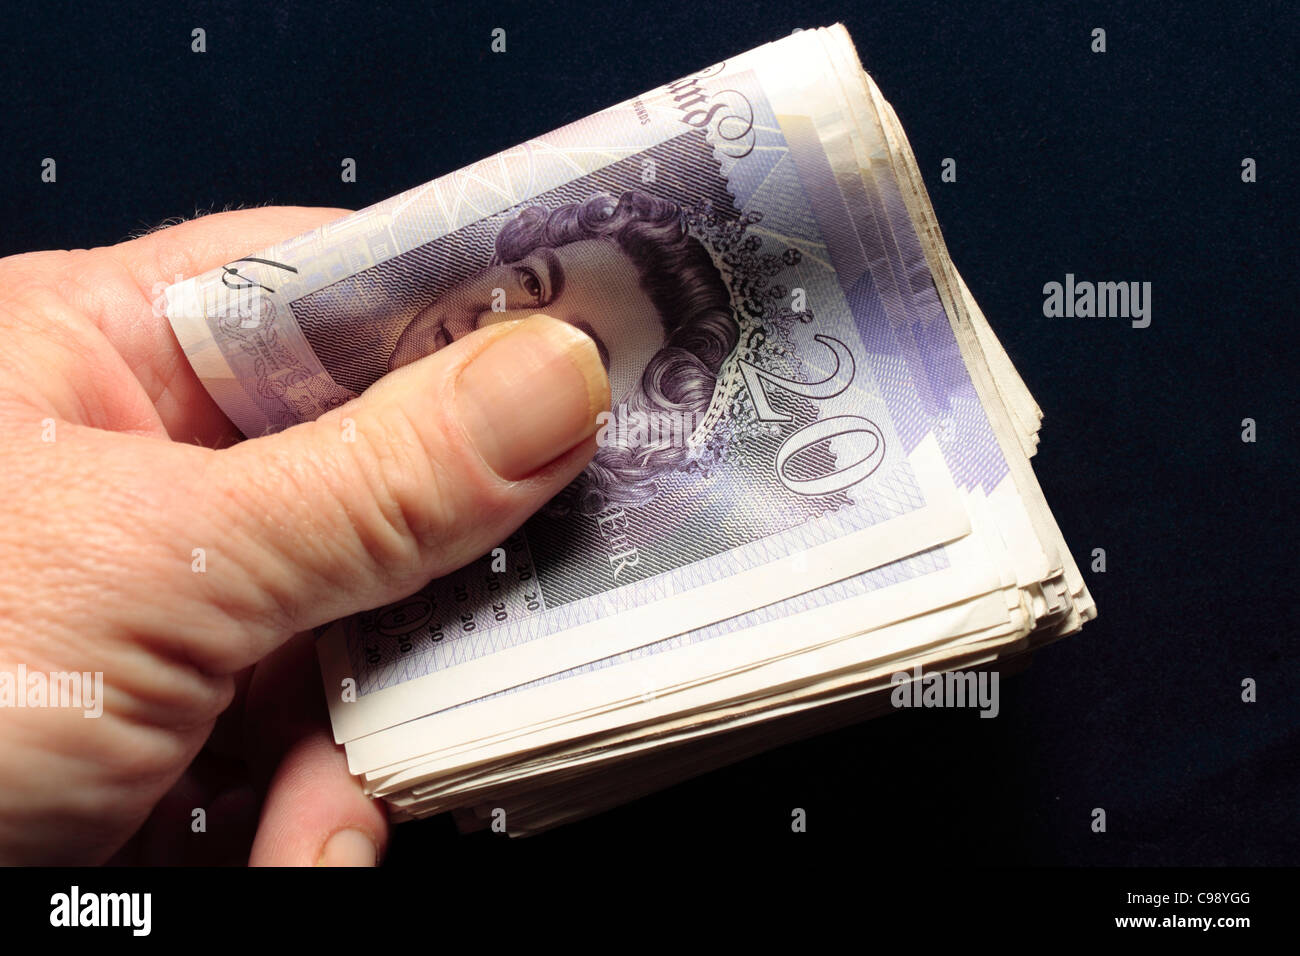 A Wad of £20 Notes folded held in hand between thumb and fingers - Stock Image